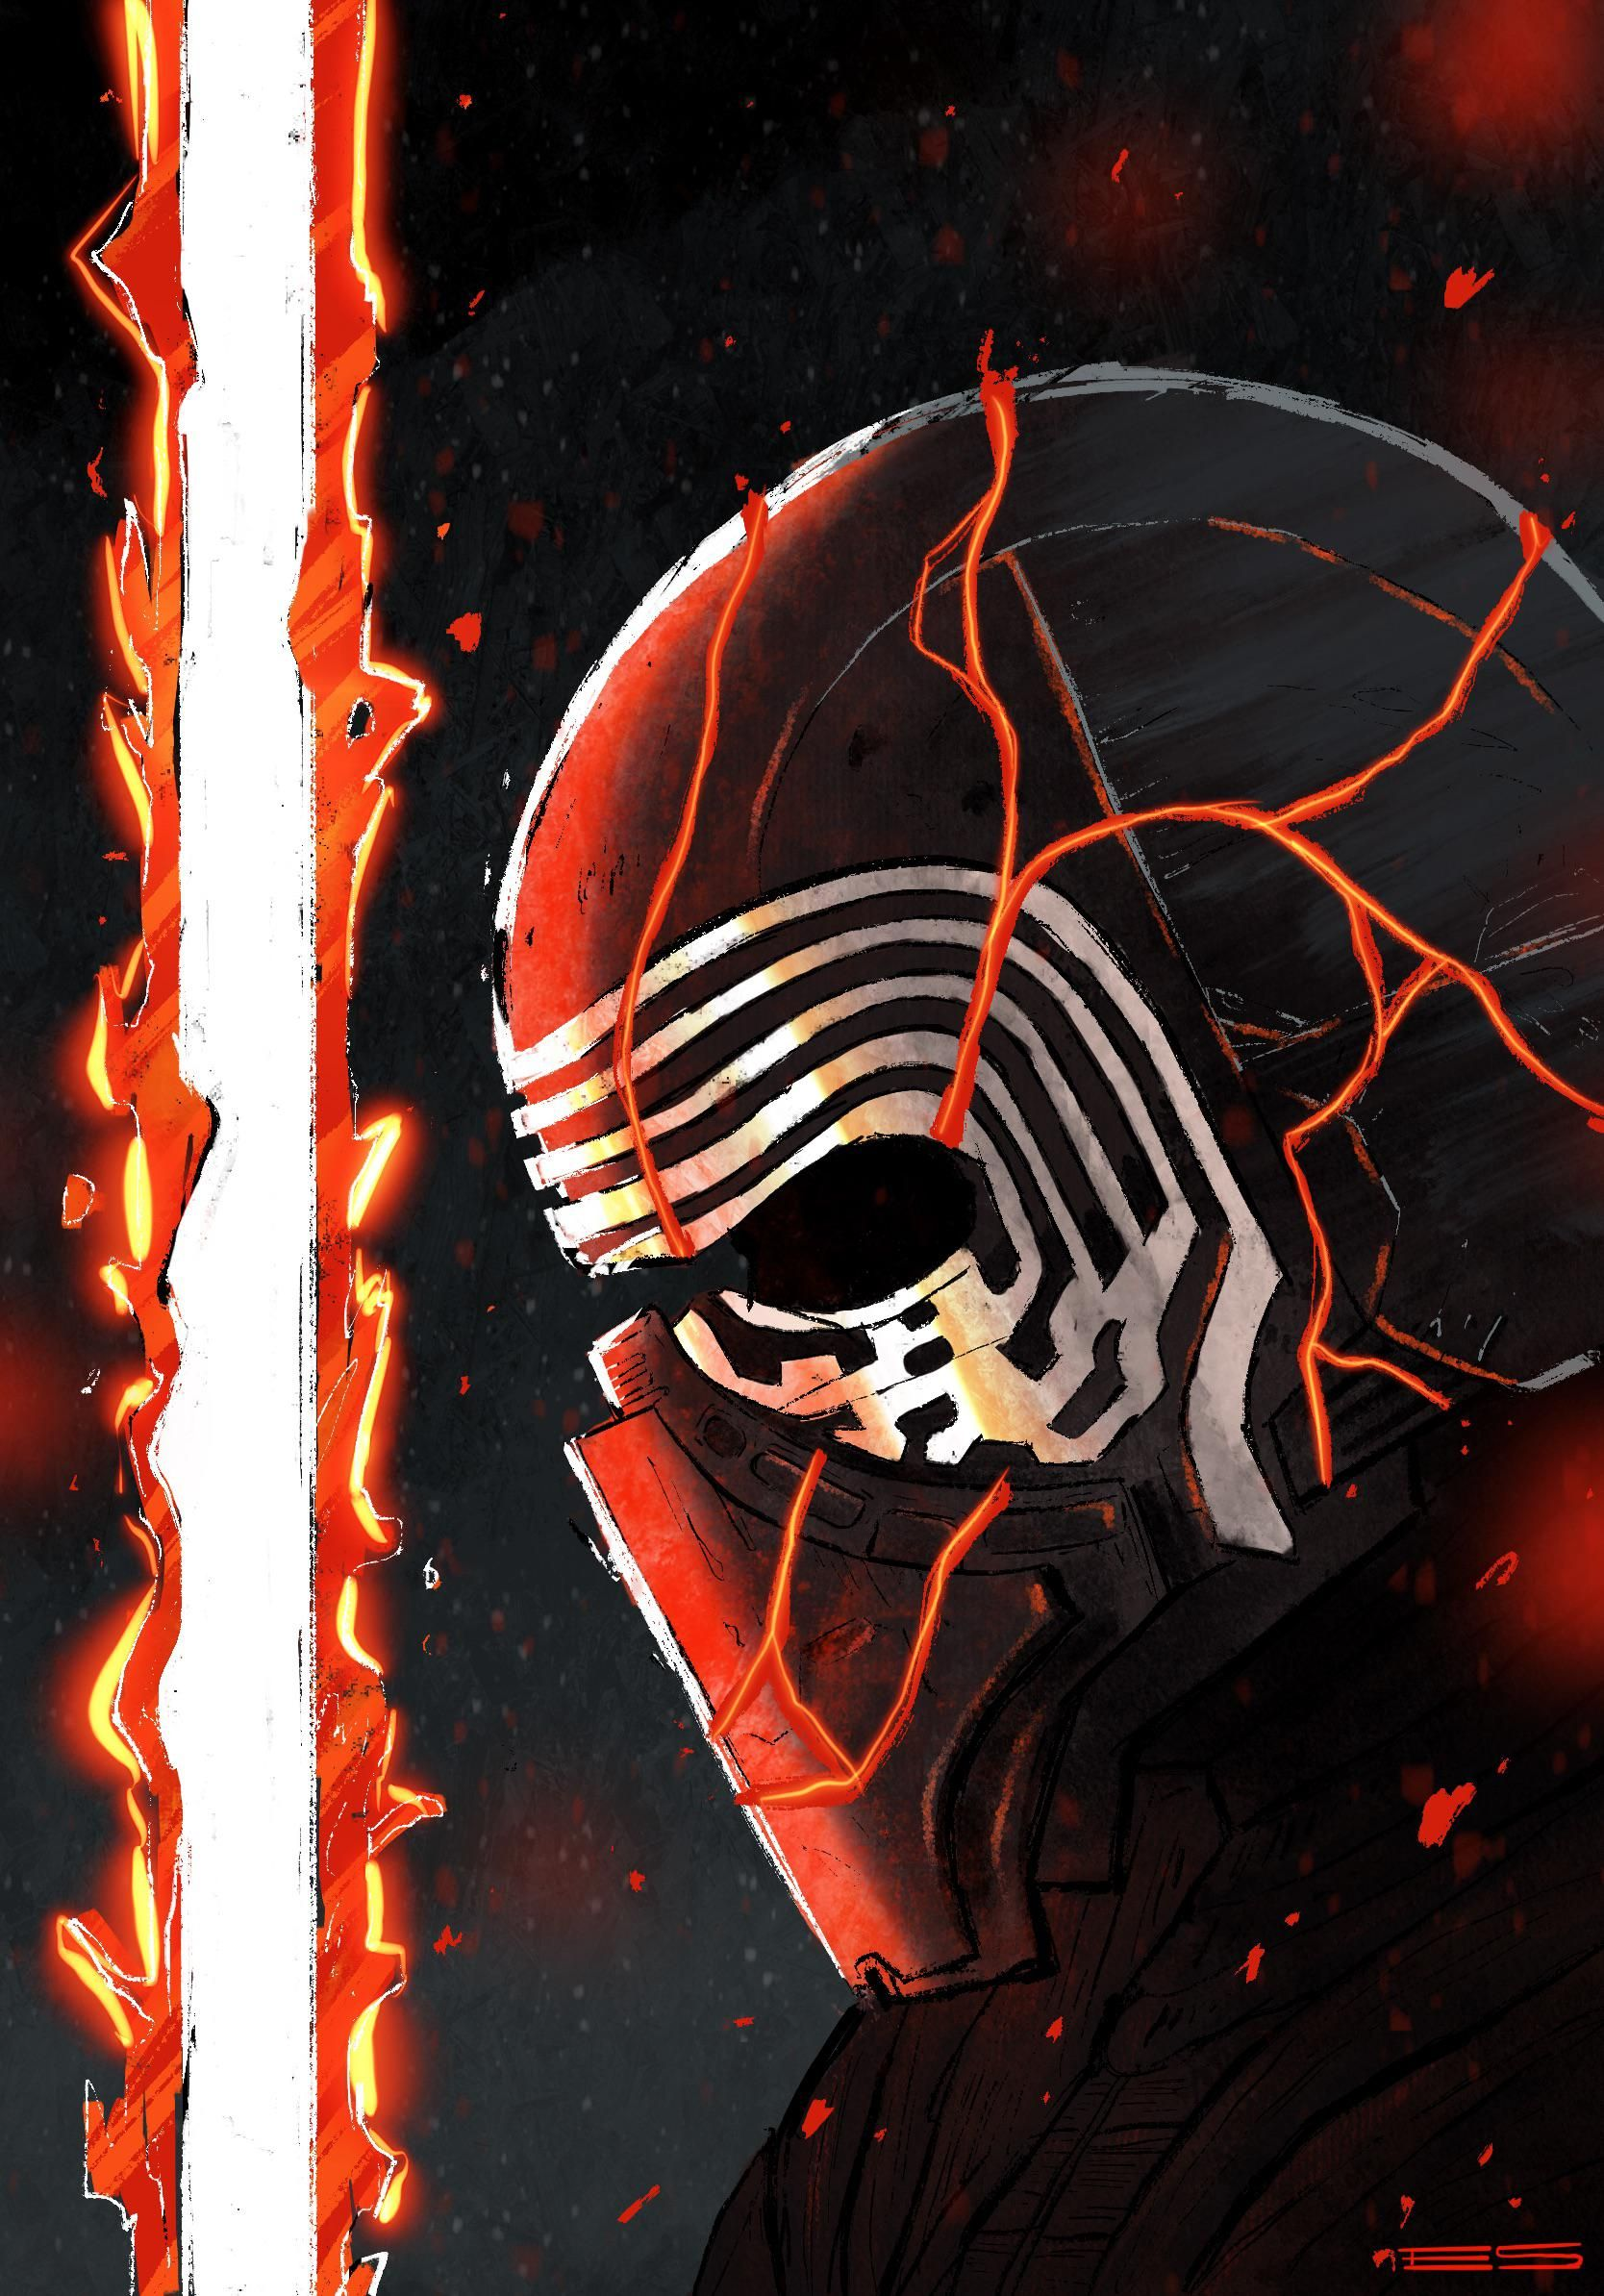 Kylo ren fan art that i finished the other nighthttpsi